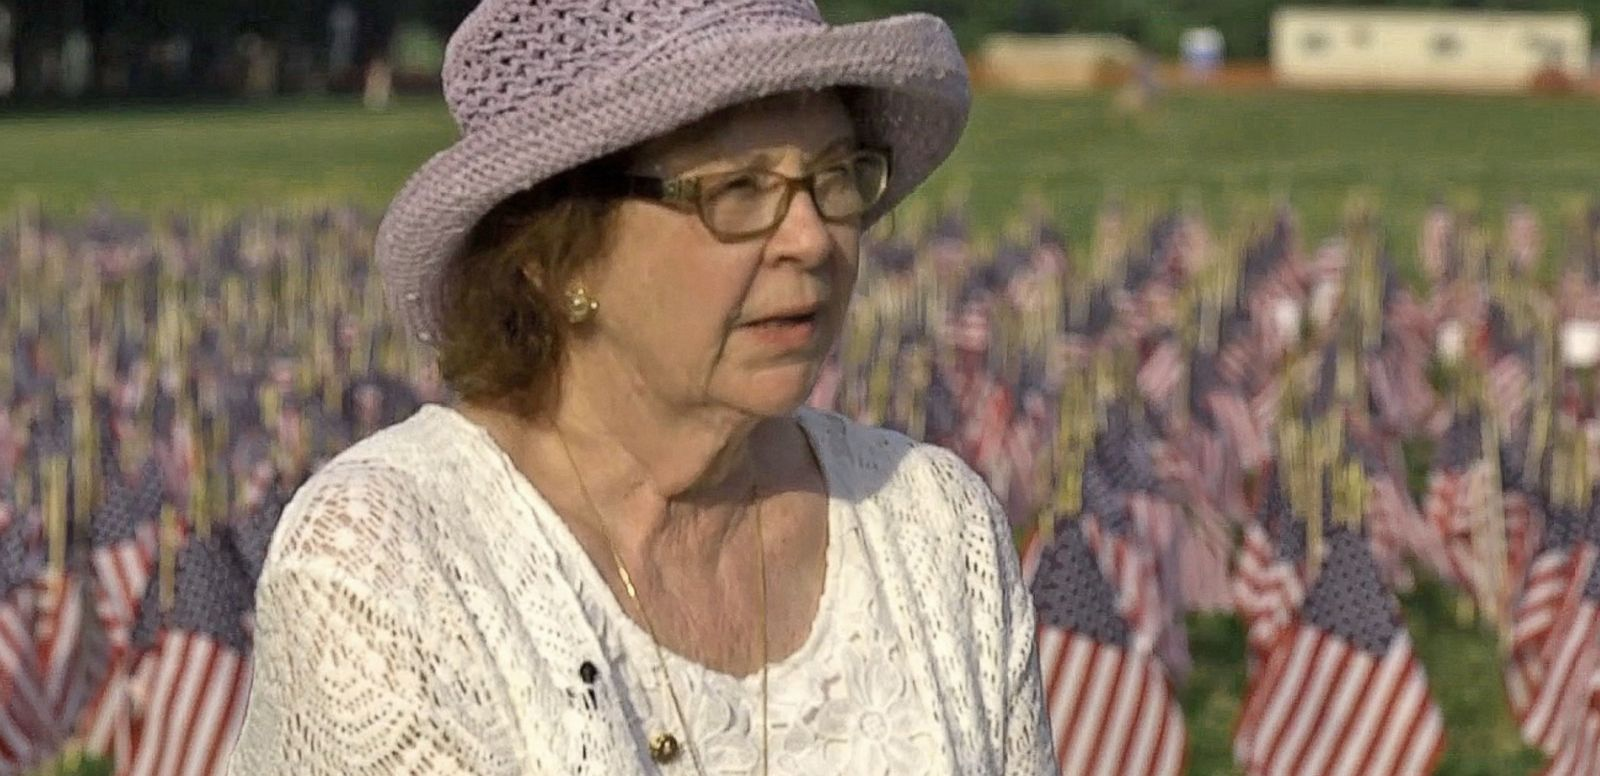 VIDEO: 10,000 Flags to Commemorate Our Nation's Heroes